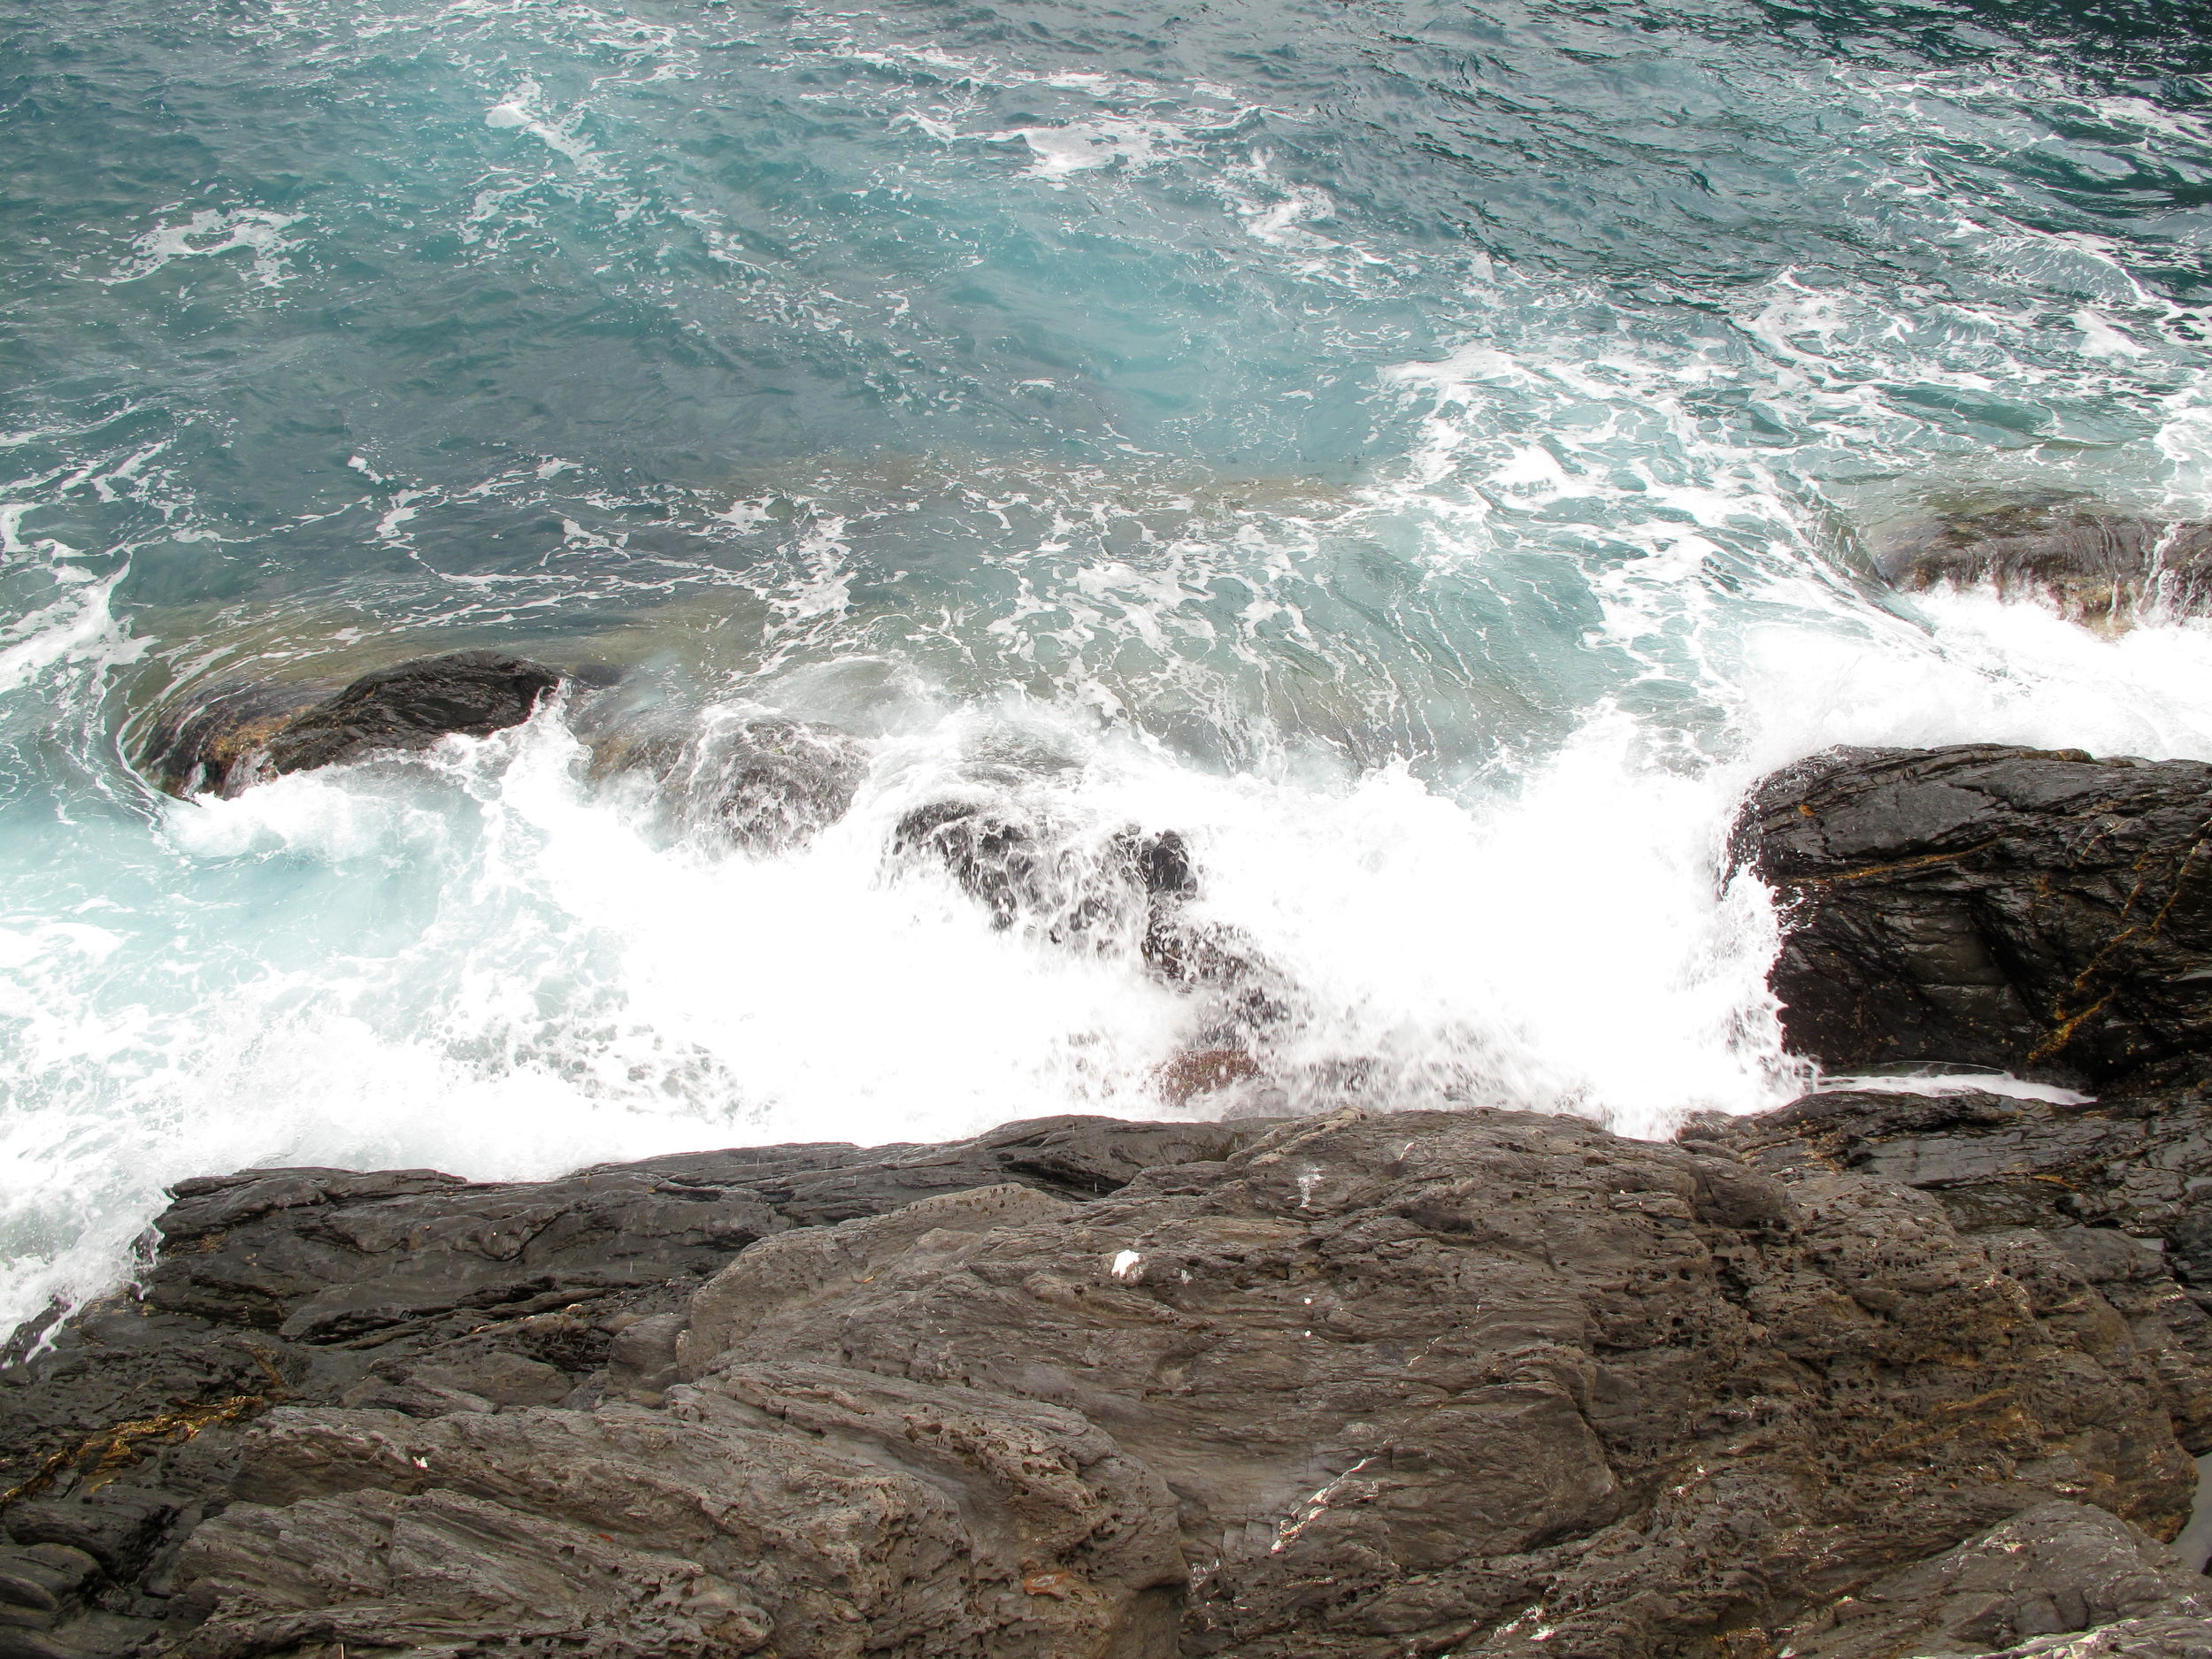 Waves over rocks on the coast of the Cinque Terre